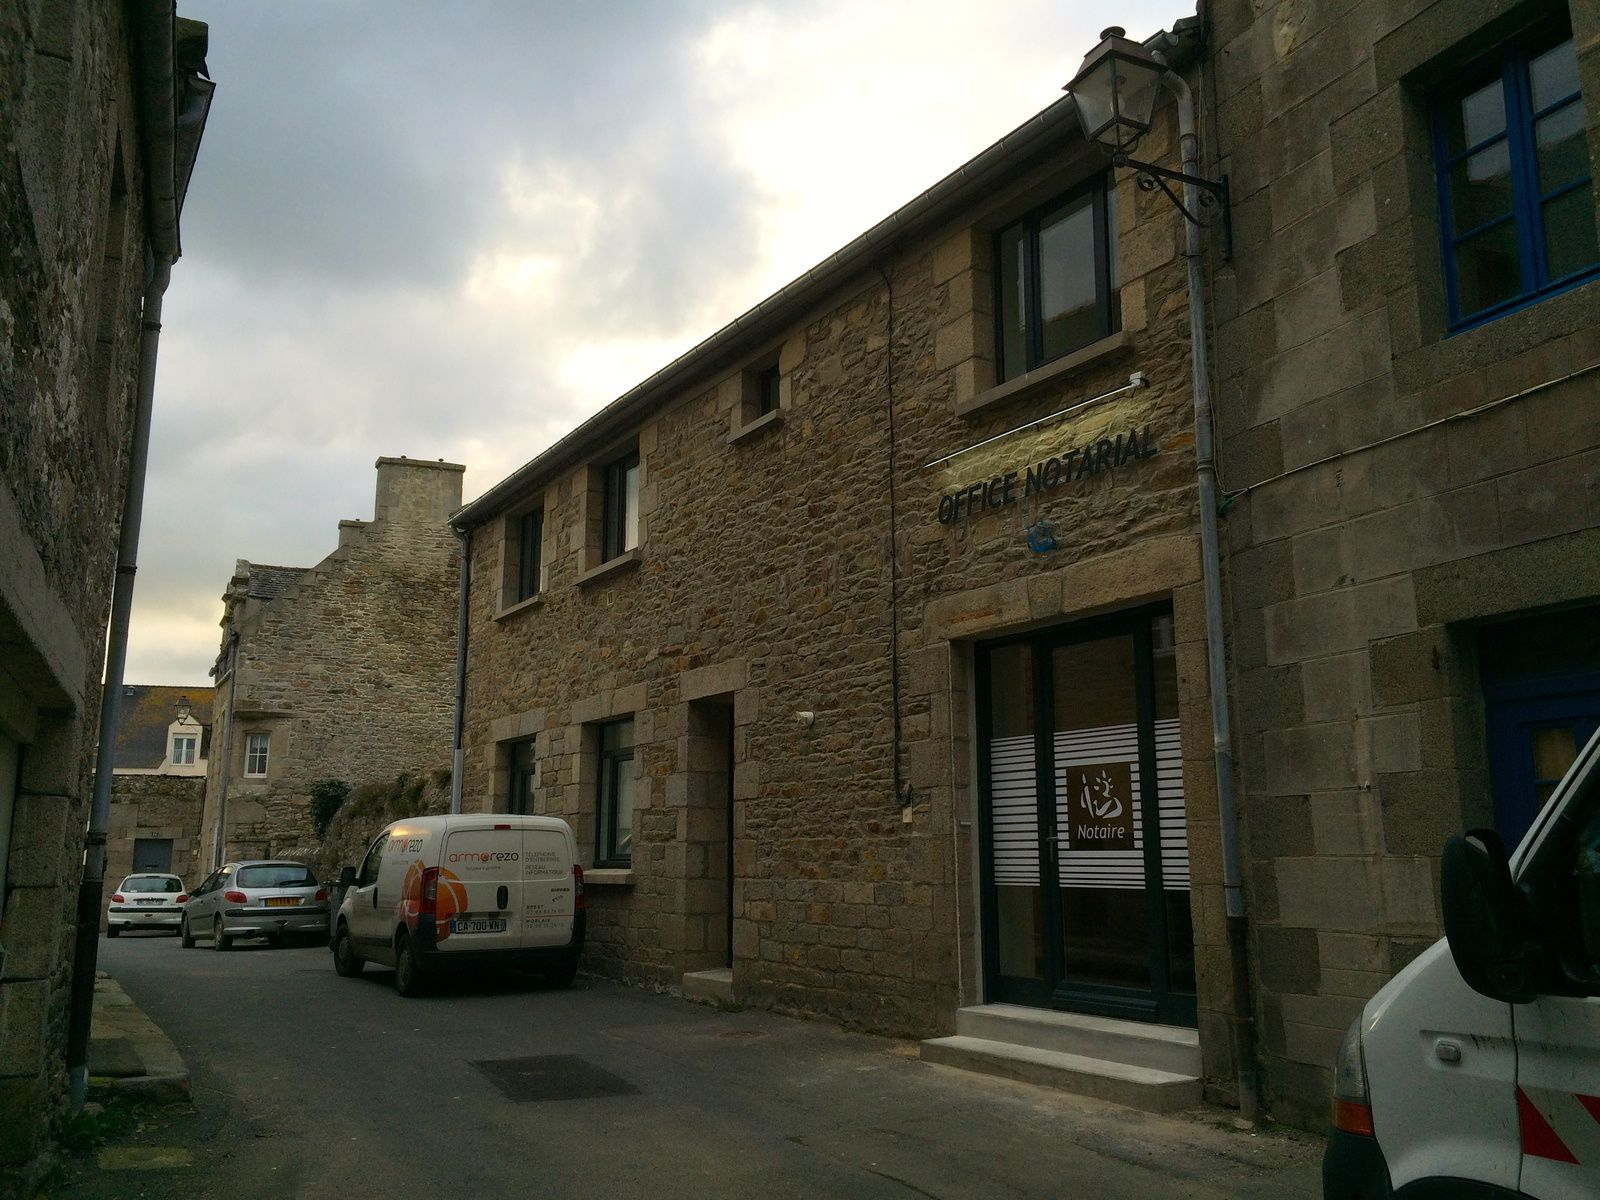 Office notarial - Roscoff